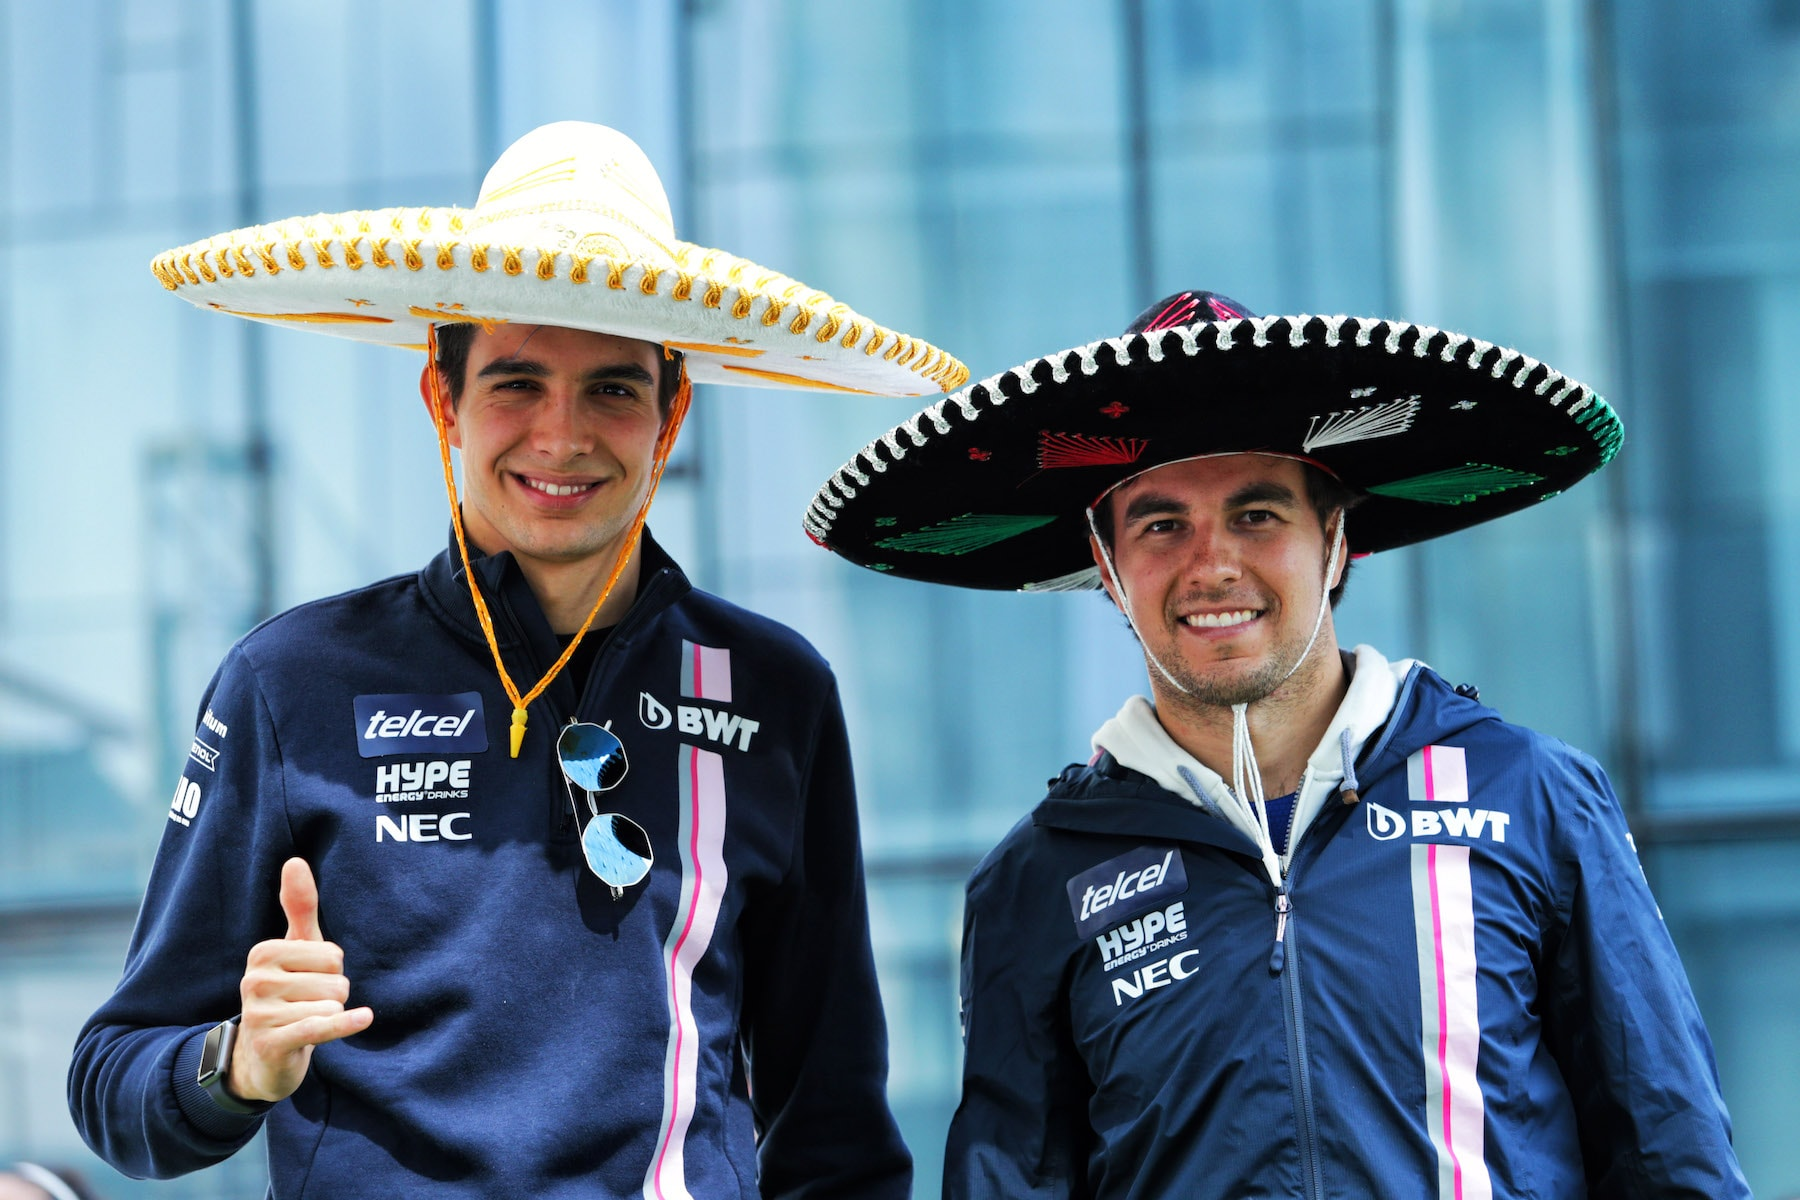 2018 Force India drivers | 2018 Mexico GP 1 copy.jpg